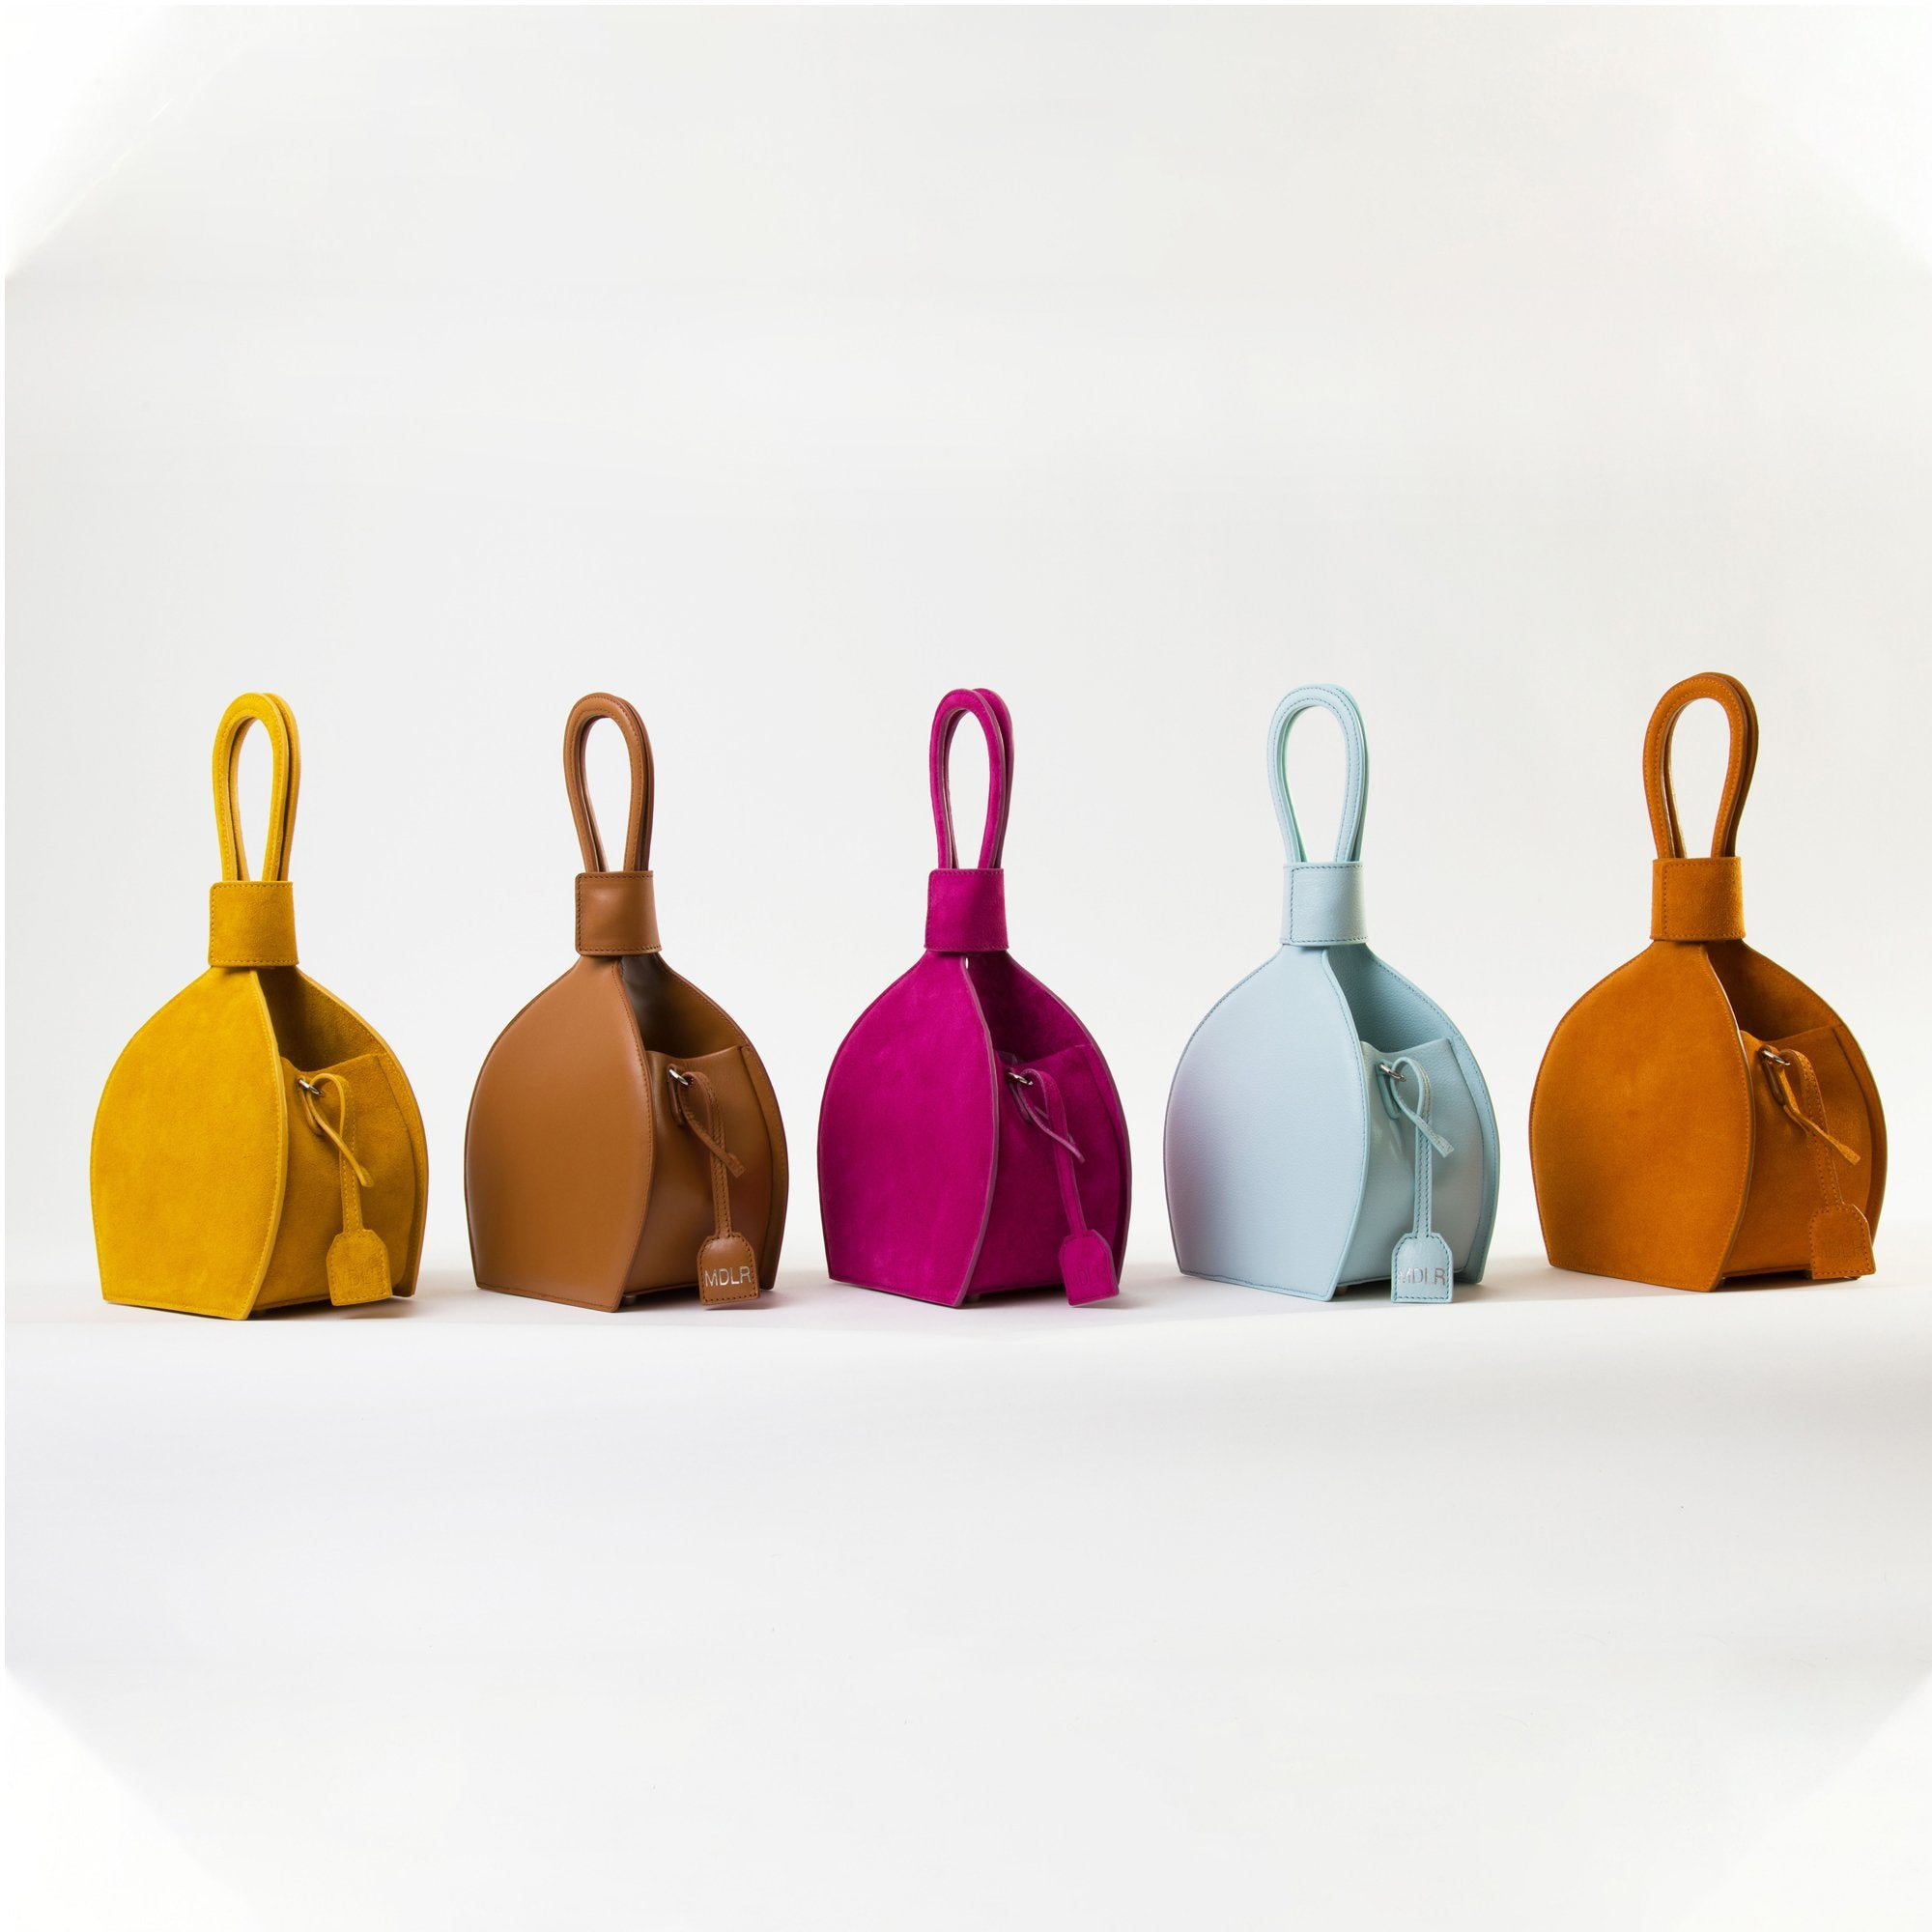 Collection of ATENA SUEDE-SLING BAG, a party bag with minimalist look and available in various colors